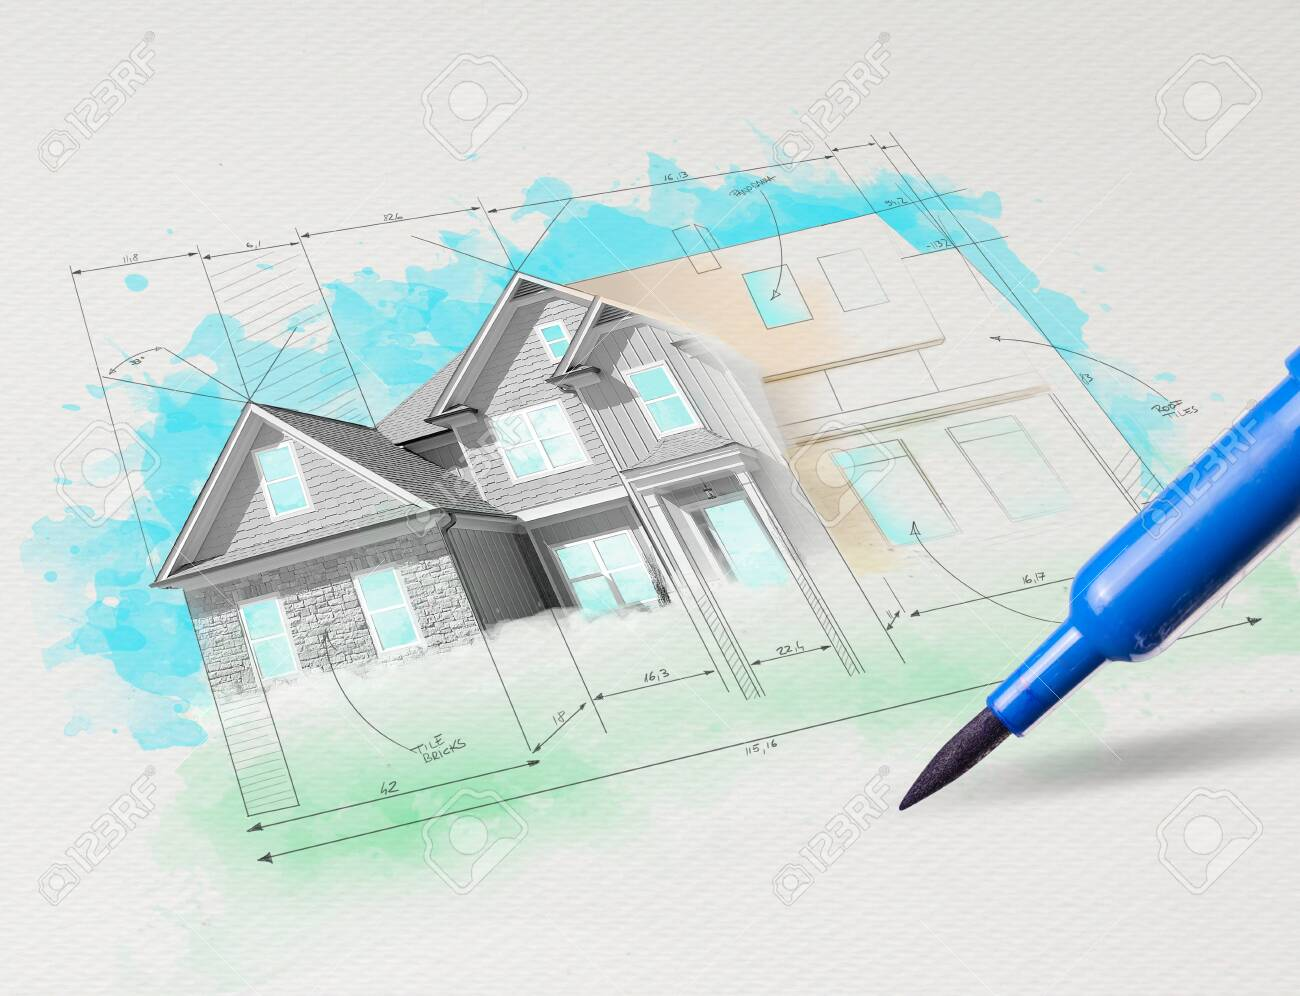 Drawing colored house plan concept - 137050984